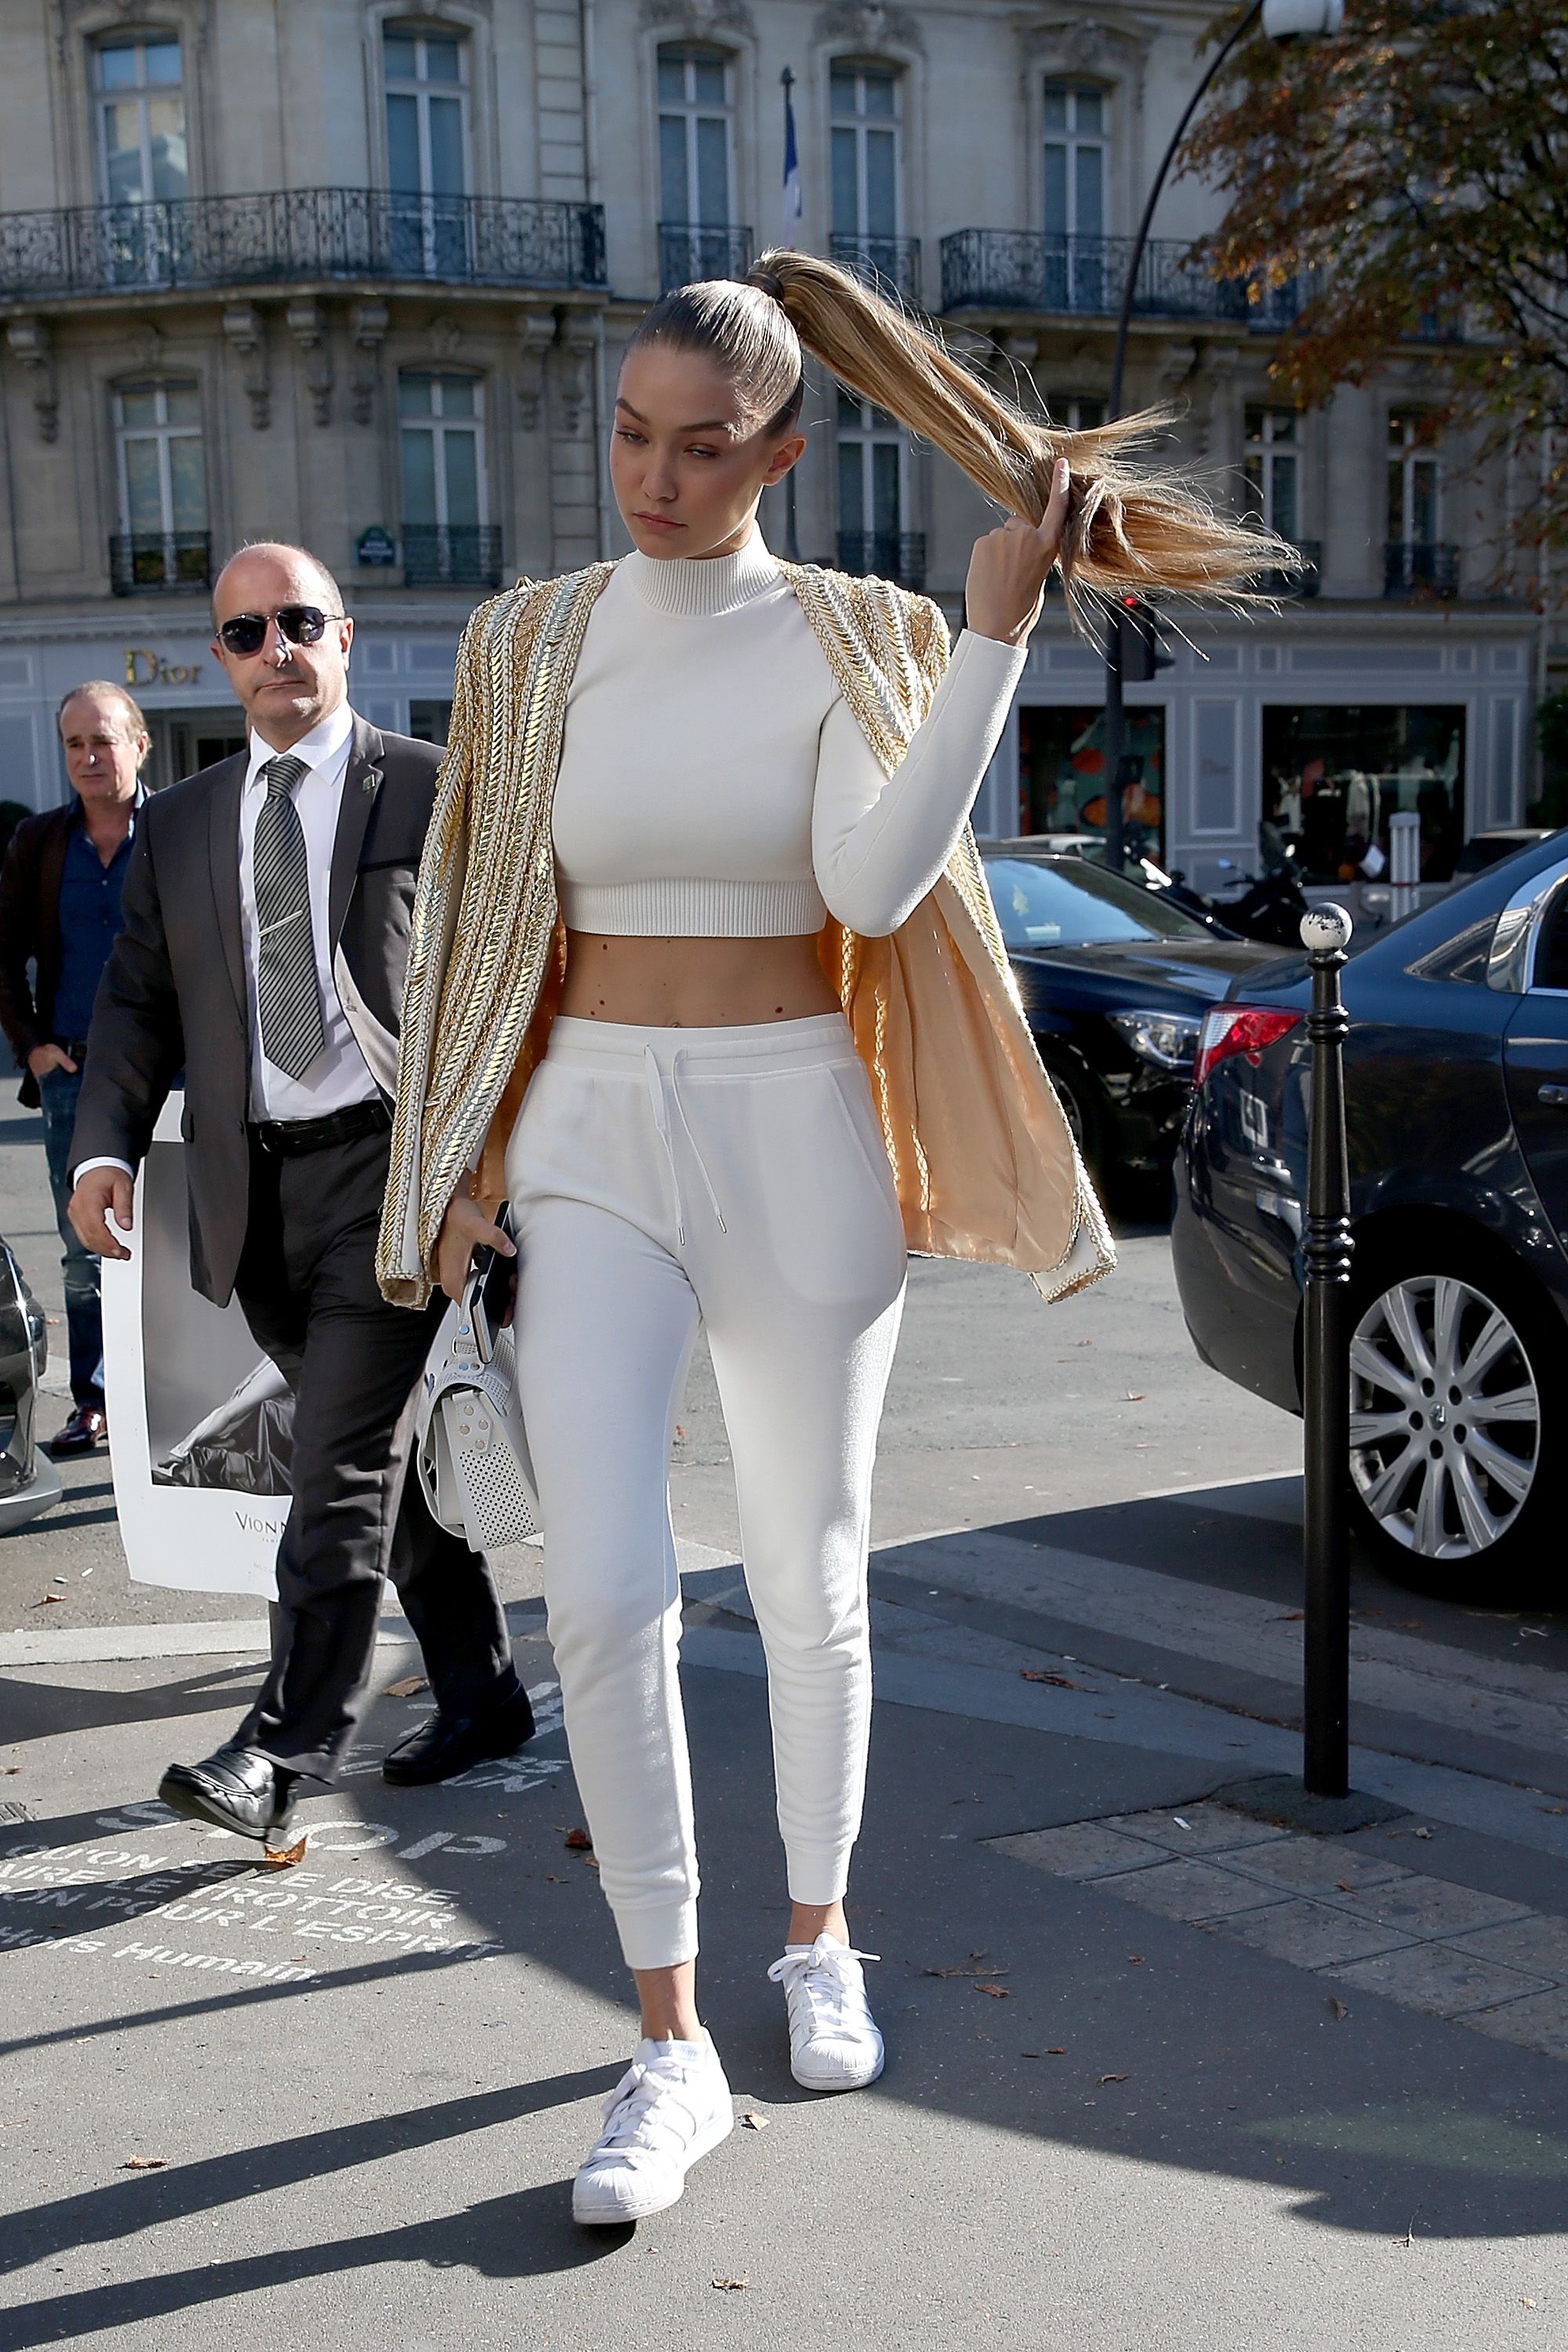 "<p>Continued: <em data-redactor-tag=""em"" data-verified=""redactor"">The Audacity of Fleece in Paris</em>, which is what Gigi Hadid should title her memoirs. Here, as an athleisure angel in all white, she sends a message of comfort and joy and taking pride in the quintessentially American trait of DGAF-ness. </p>"